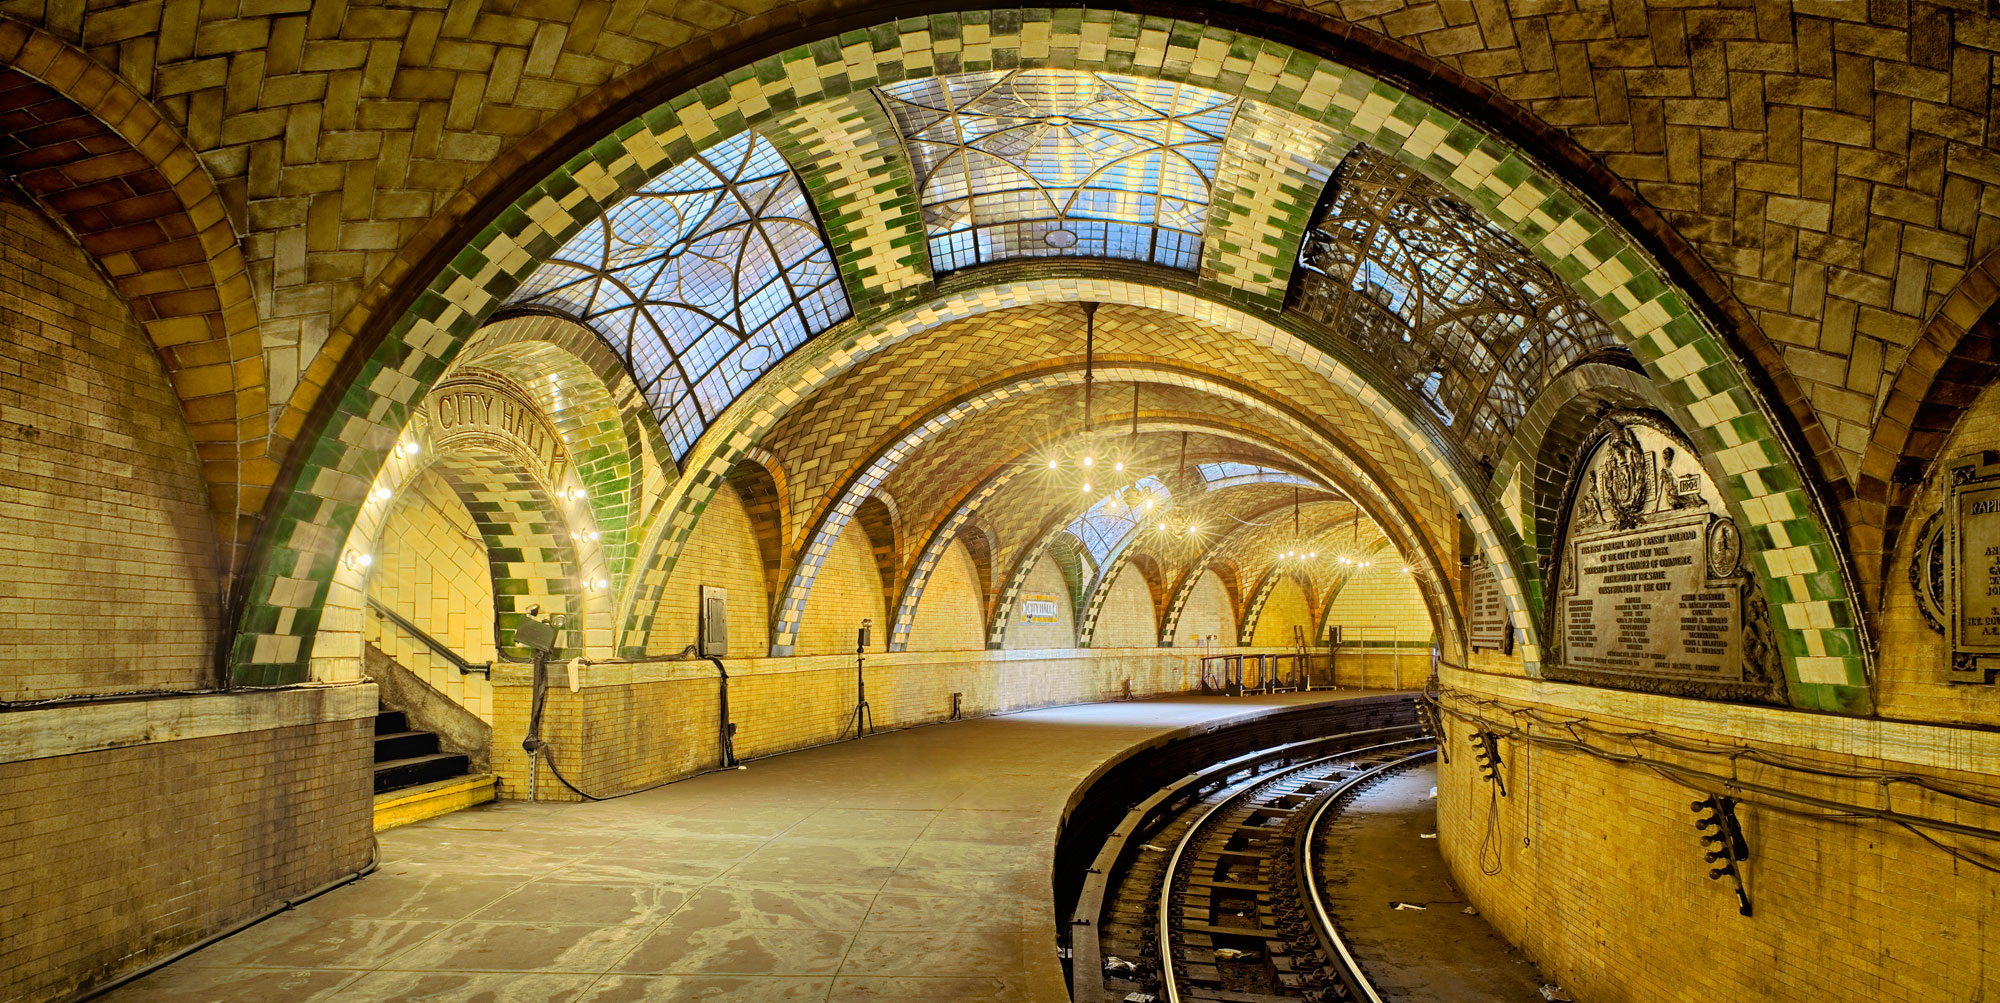 City Hall Station, Manhattan